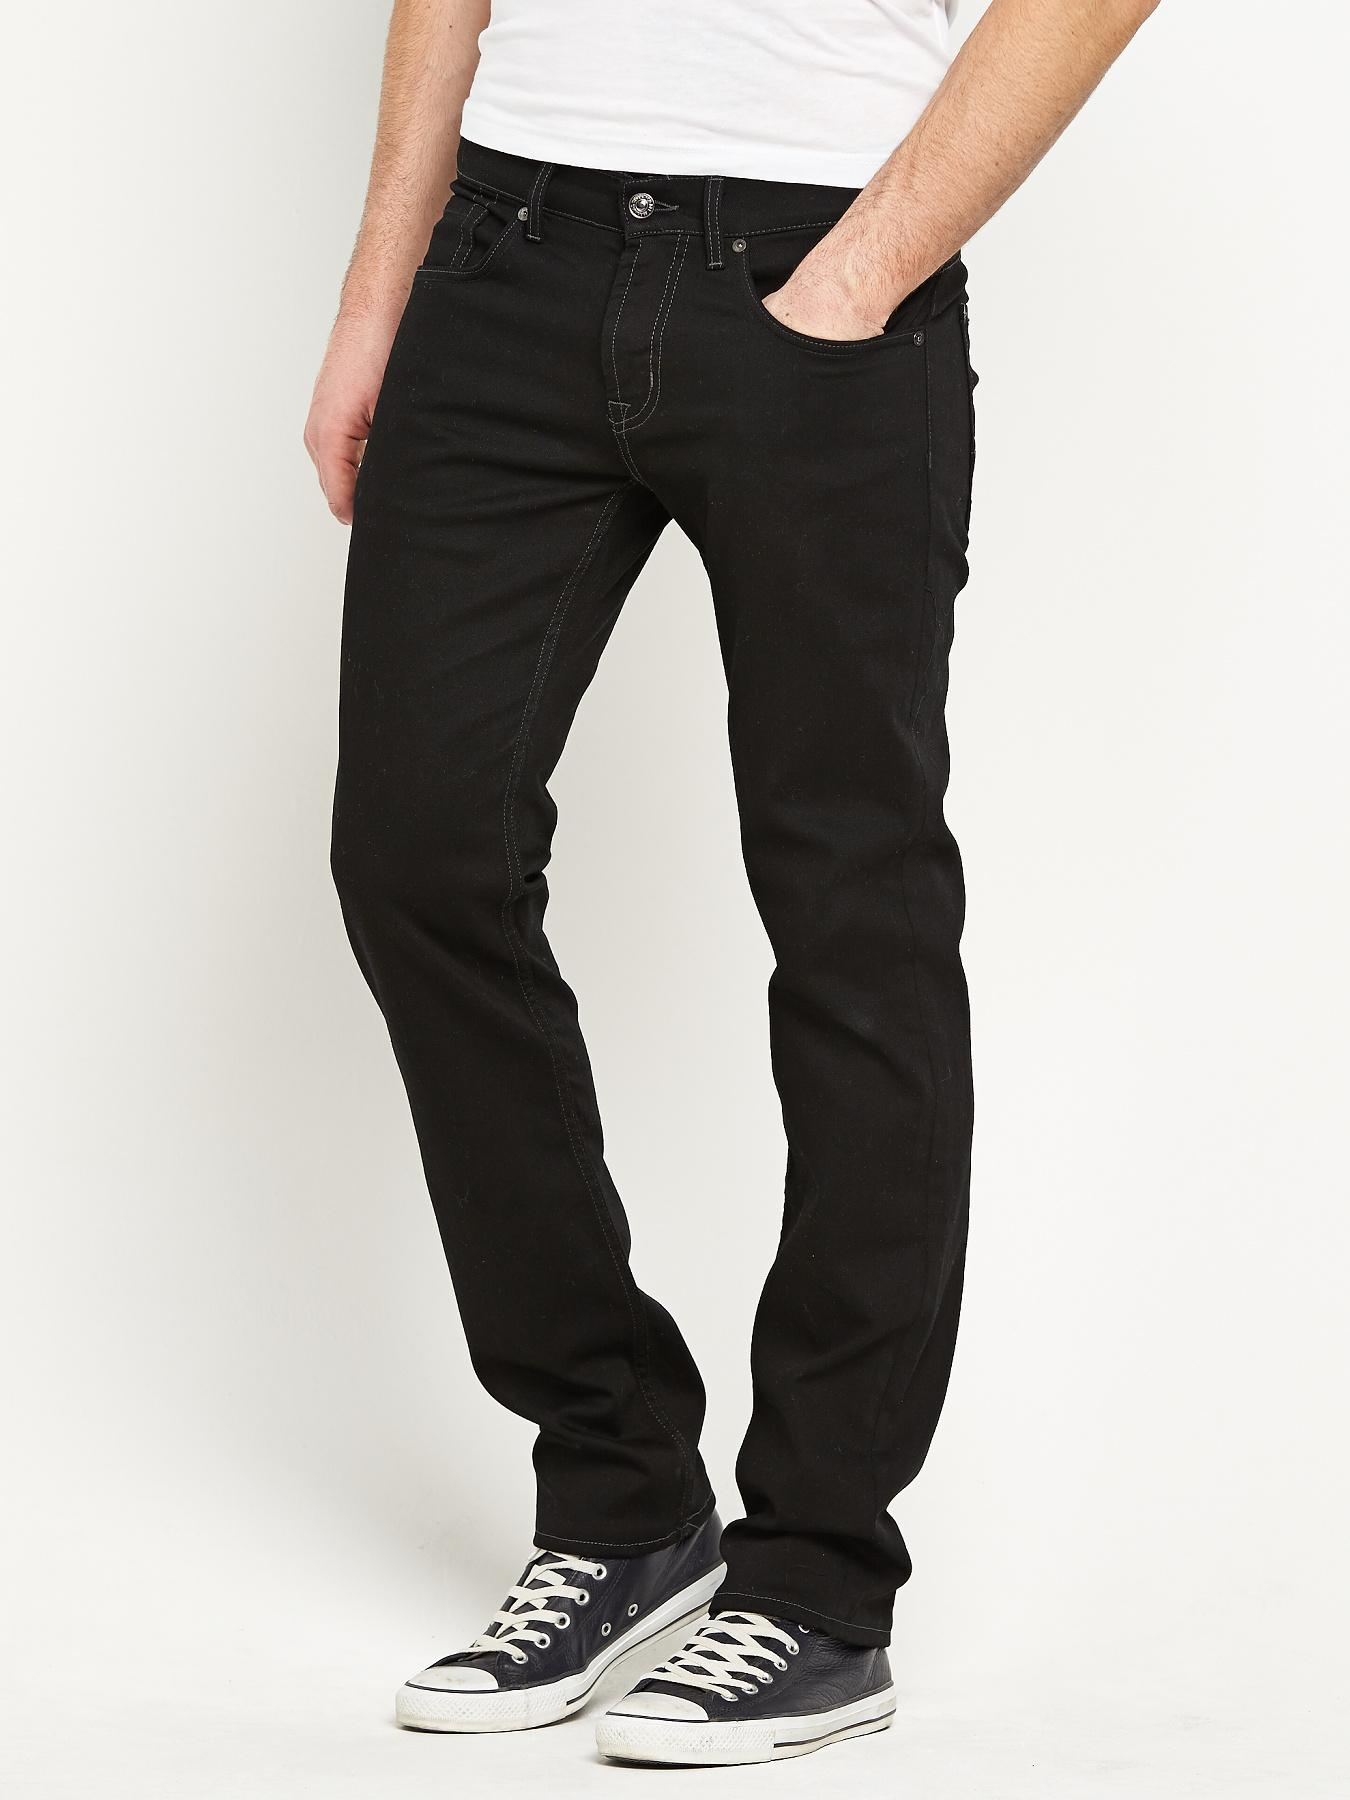 7 For All Mankind Mens Straight Jeans - Black, Black